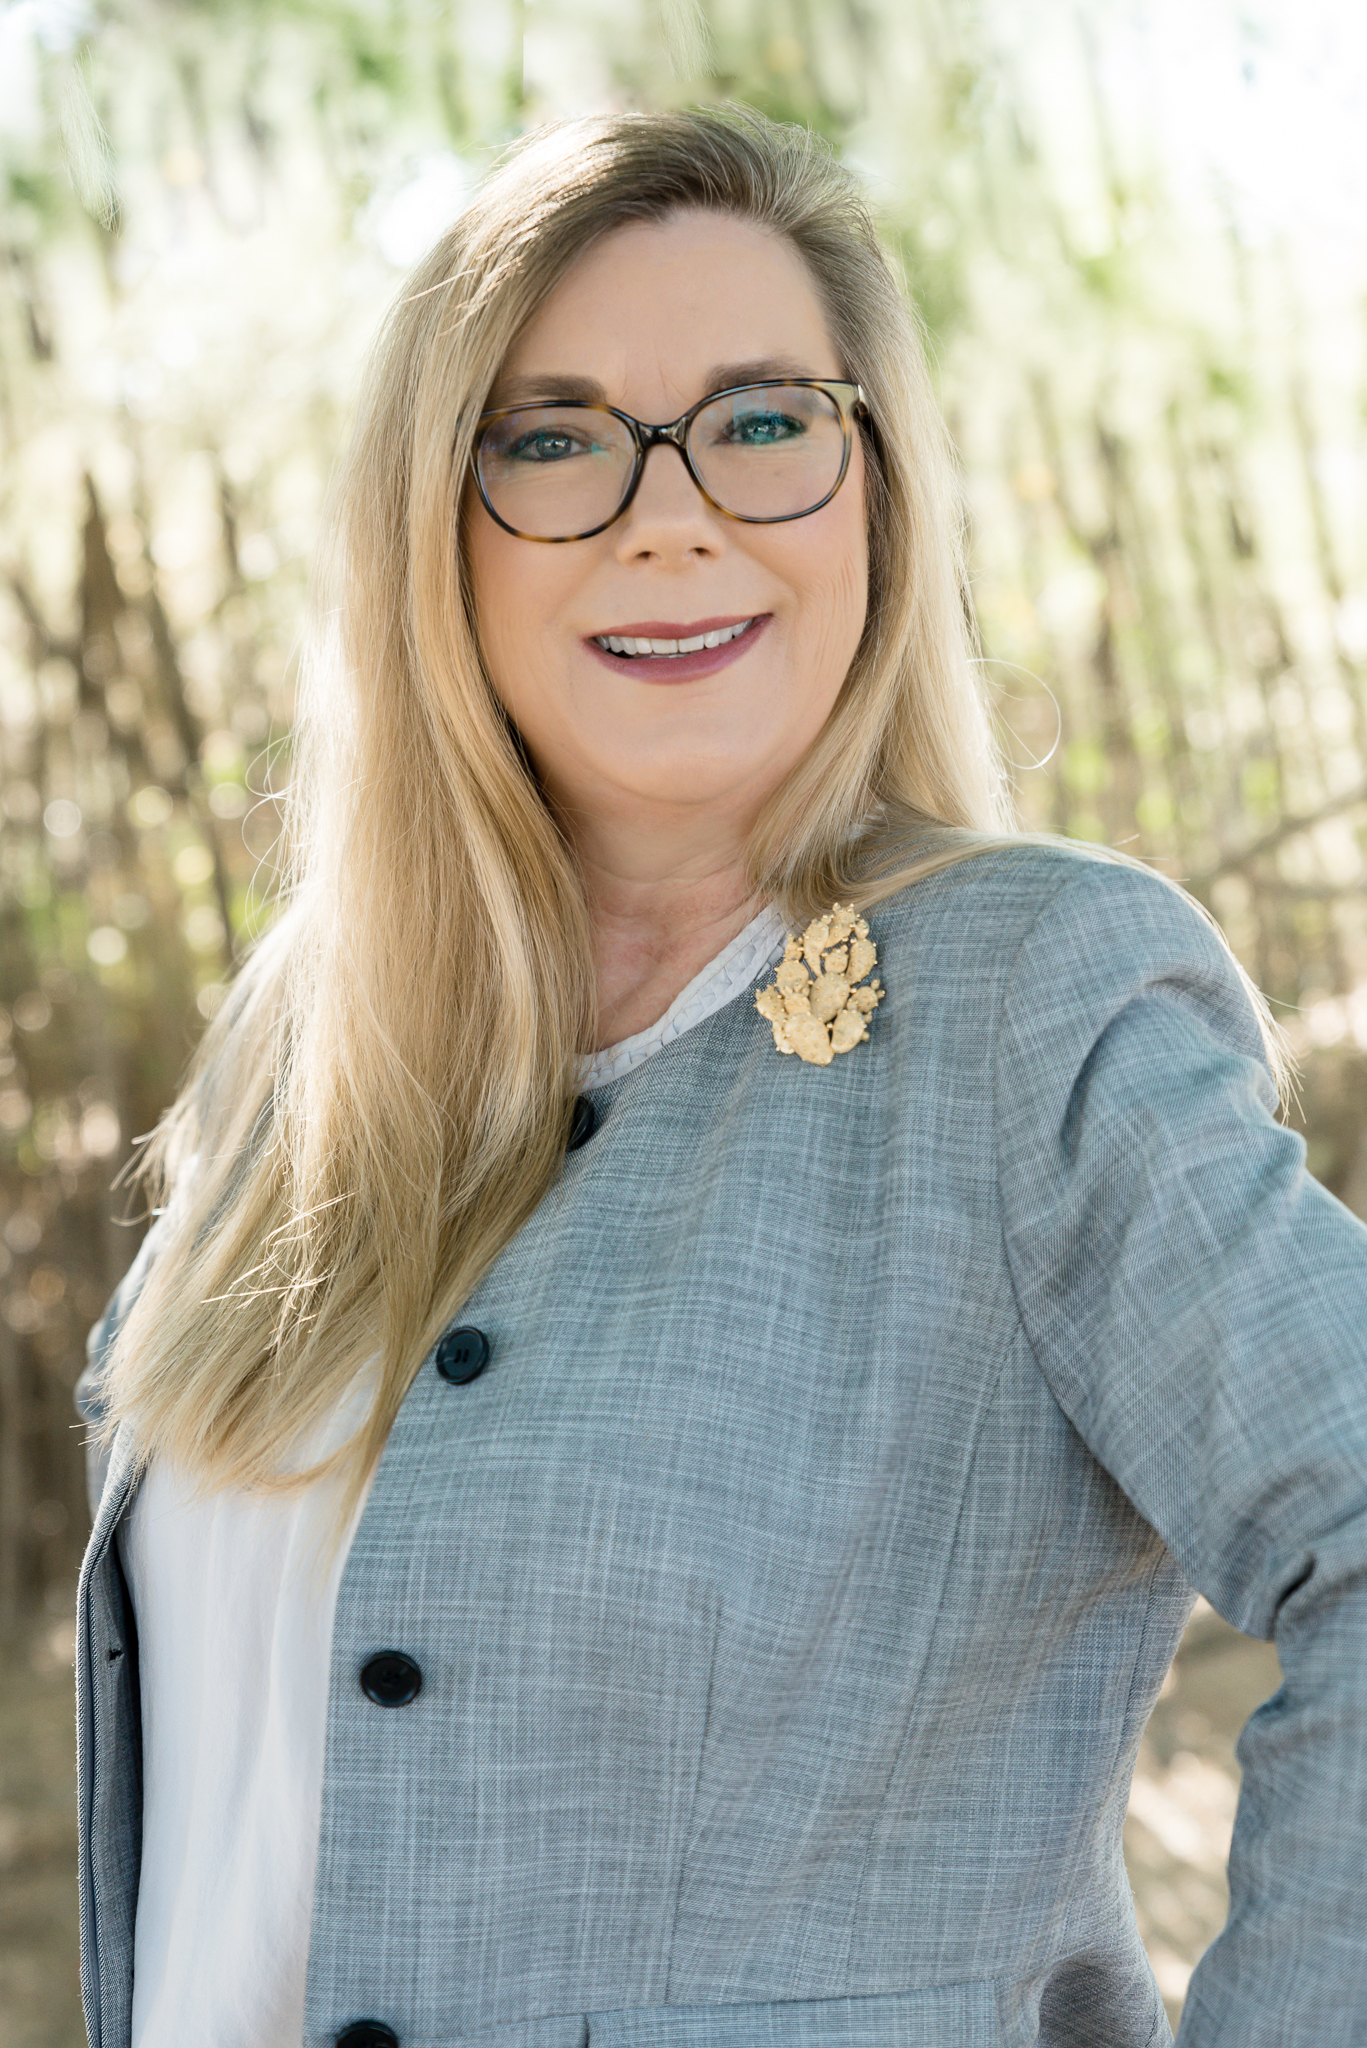 ASU Law alumna recognized as one of the most influential women in Arizona business